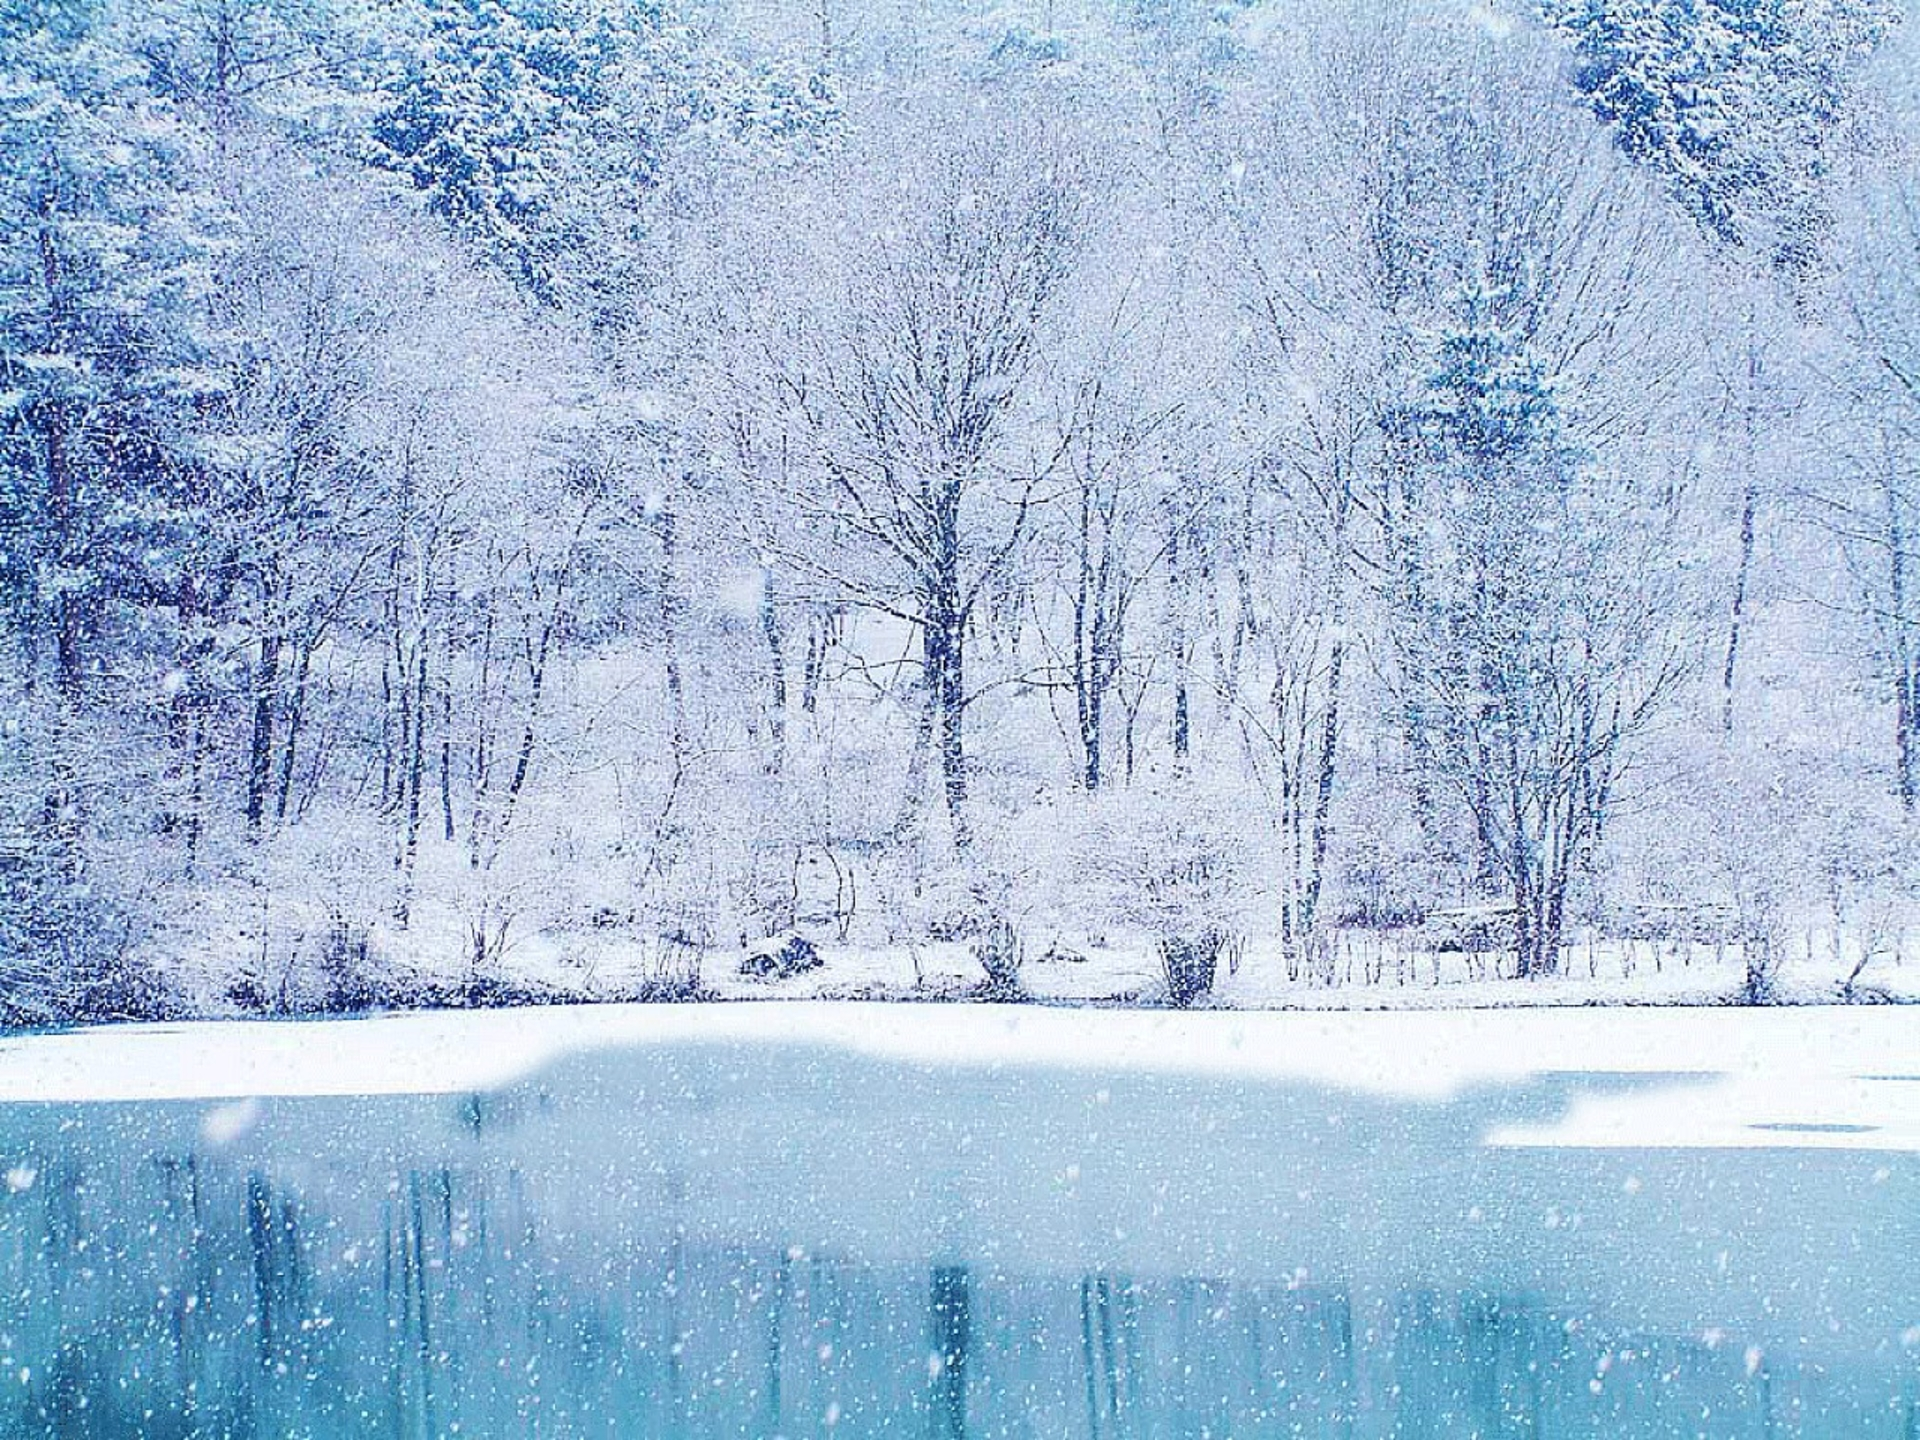 ice wallpaper (56 wallpapers) – hd wallpapers